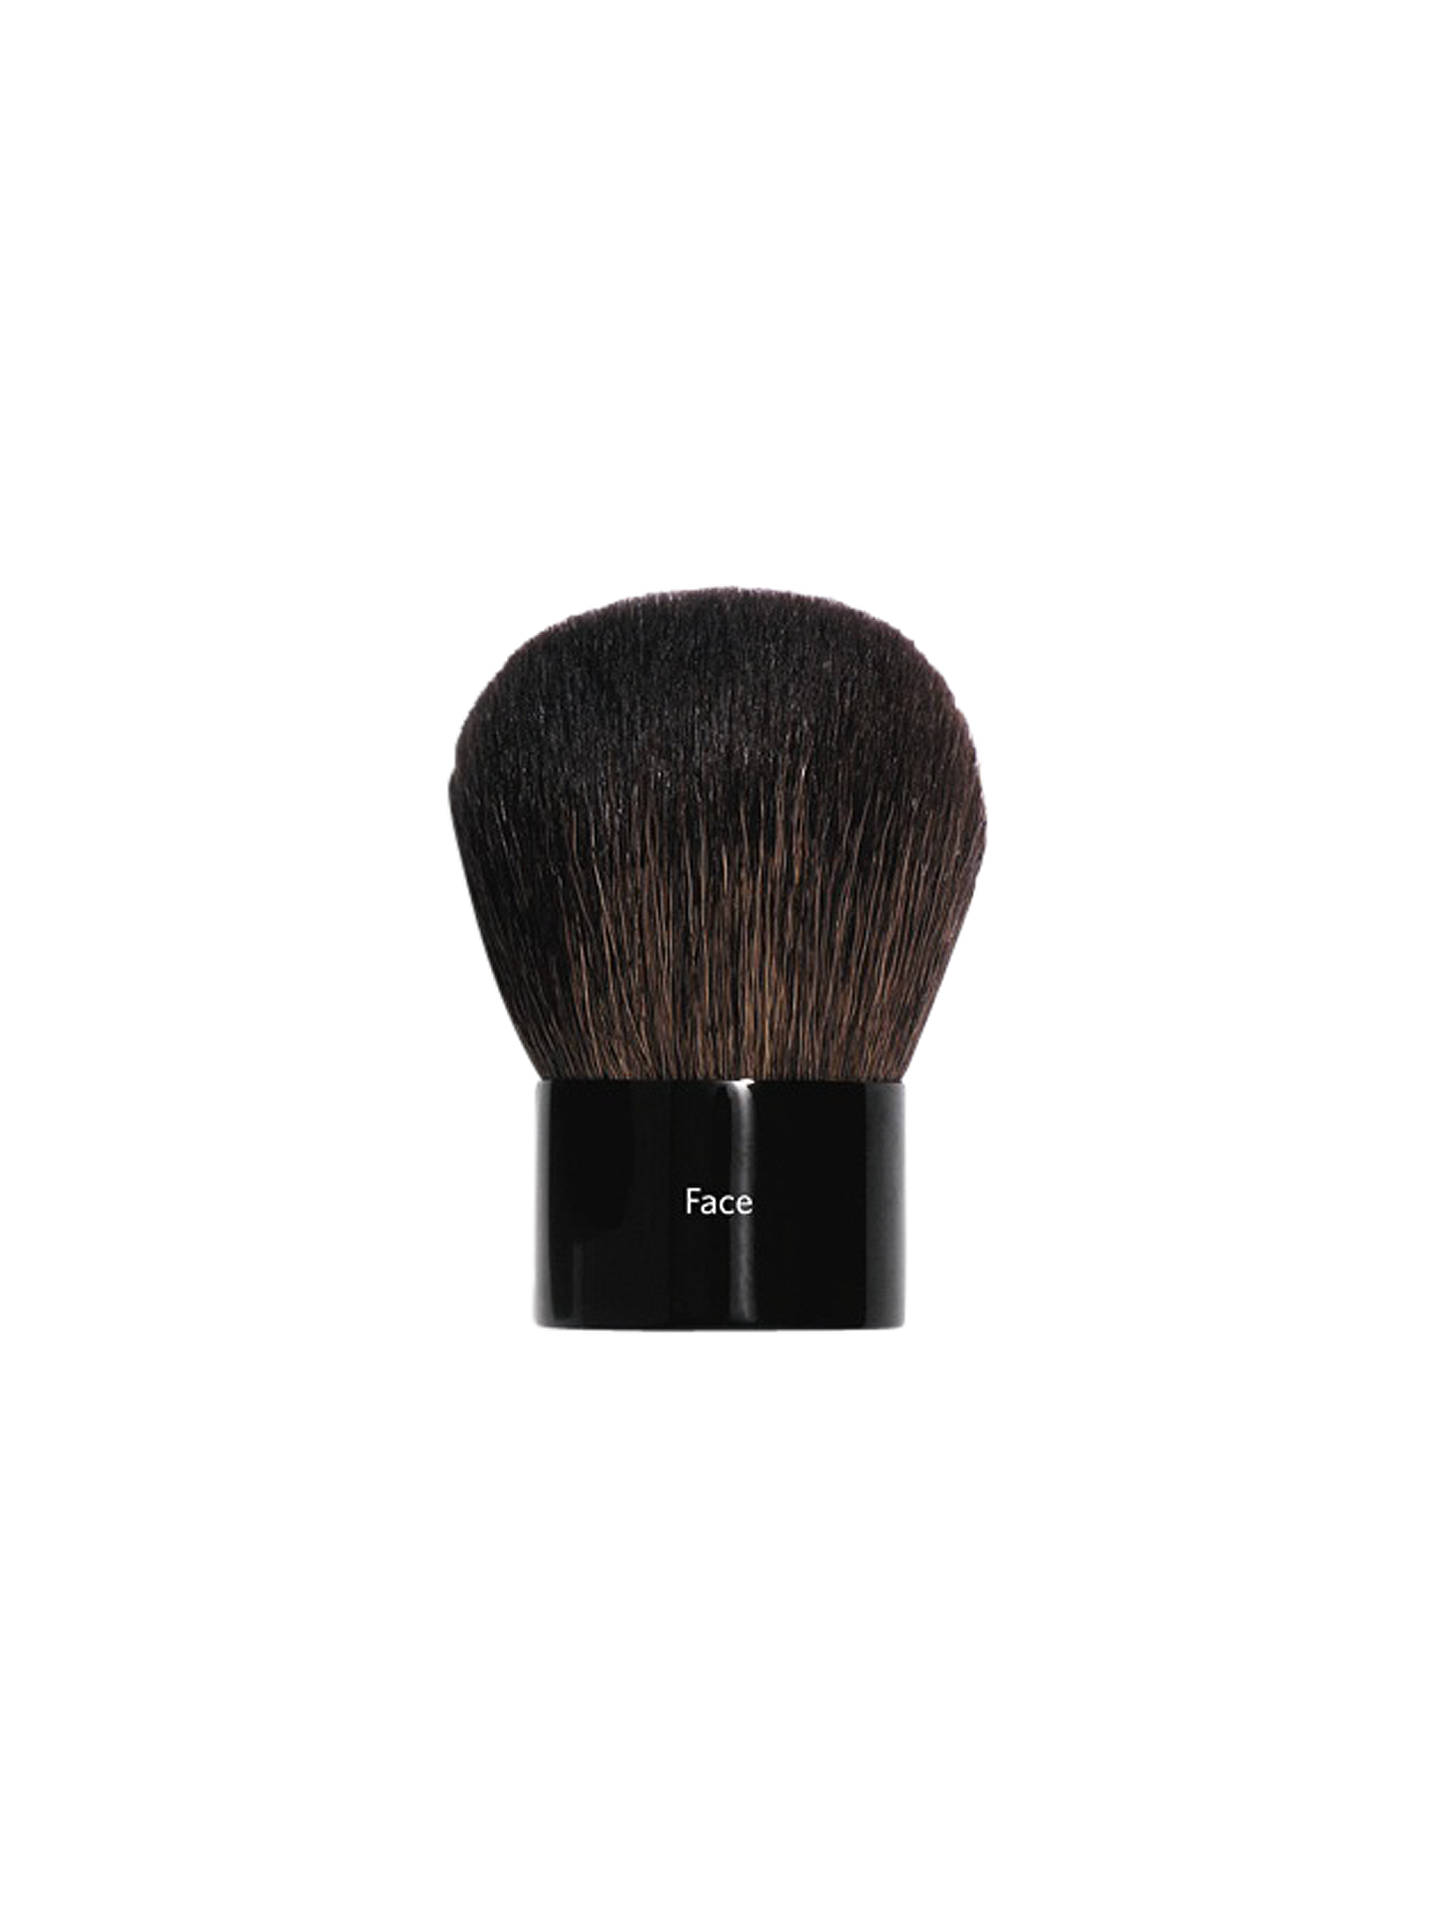 BuyBobbi Brown Face Brush Online at johnlewis.com